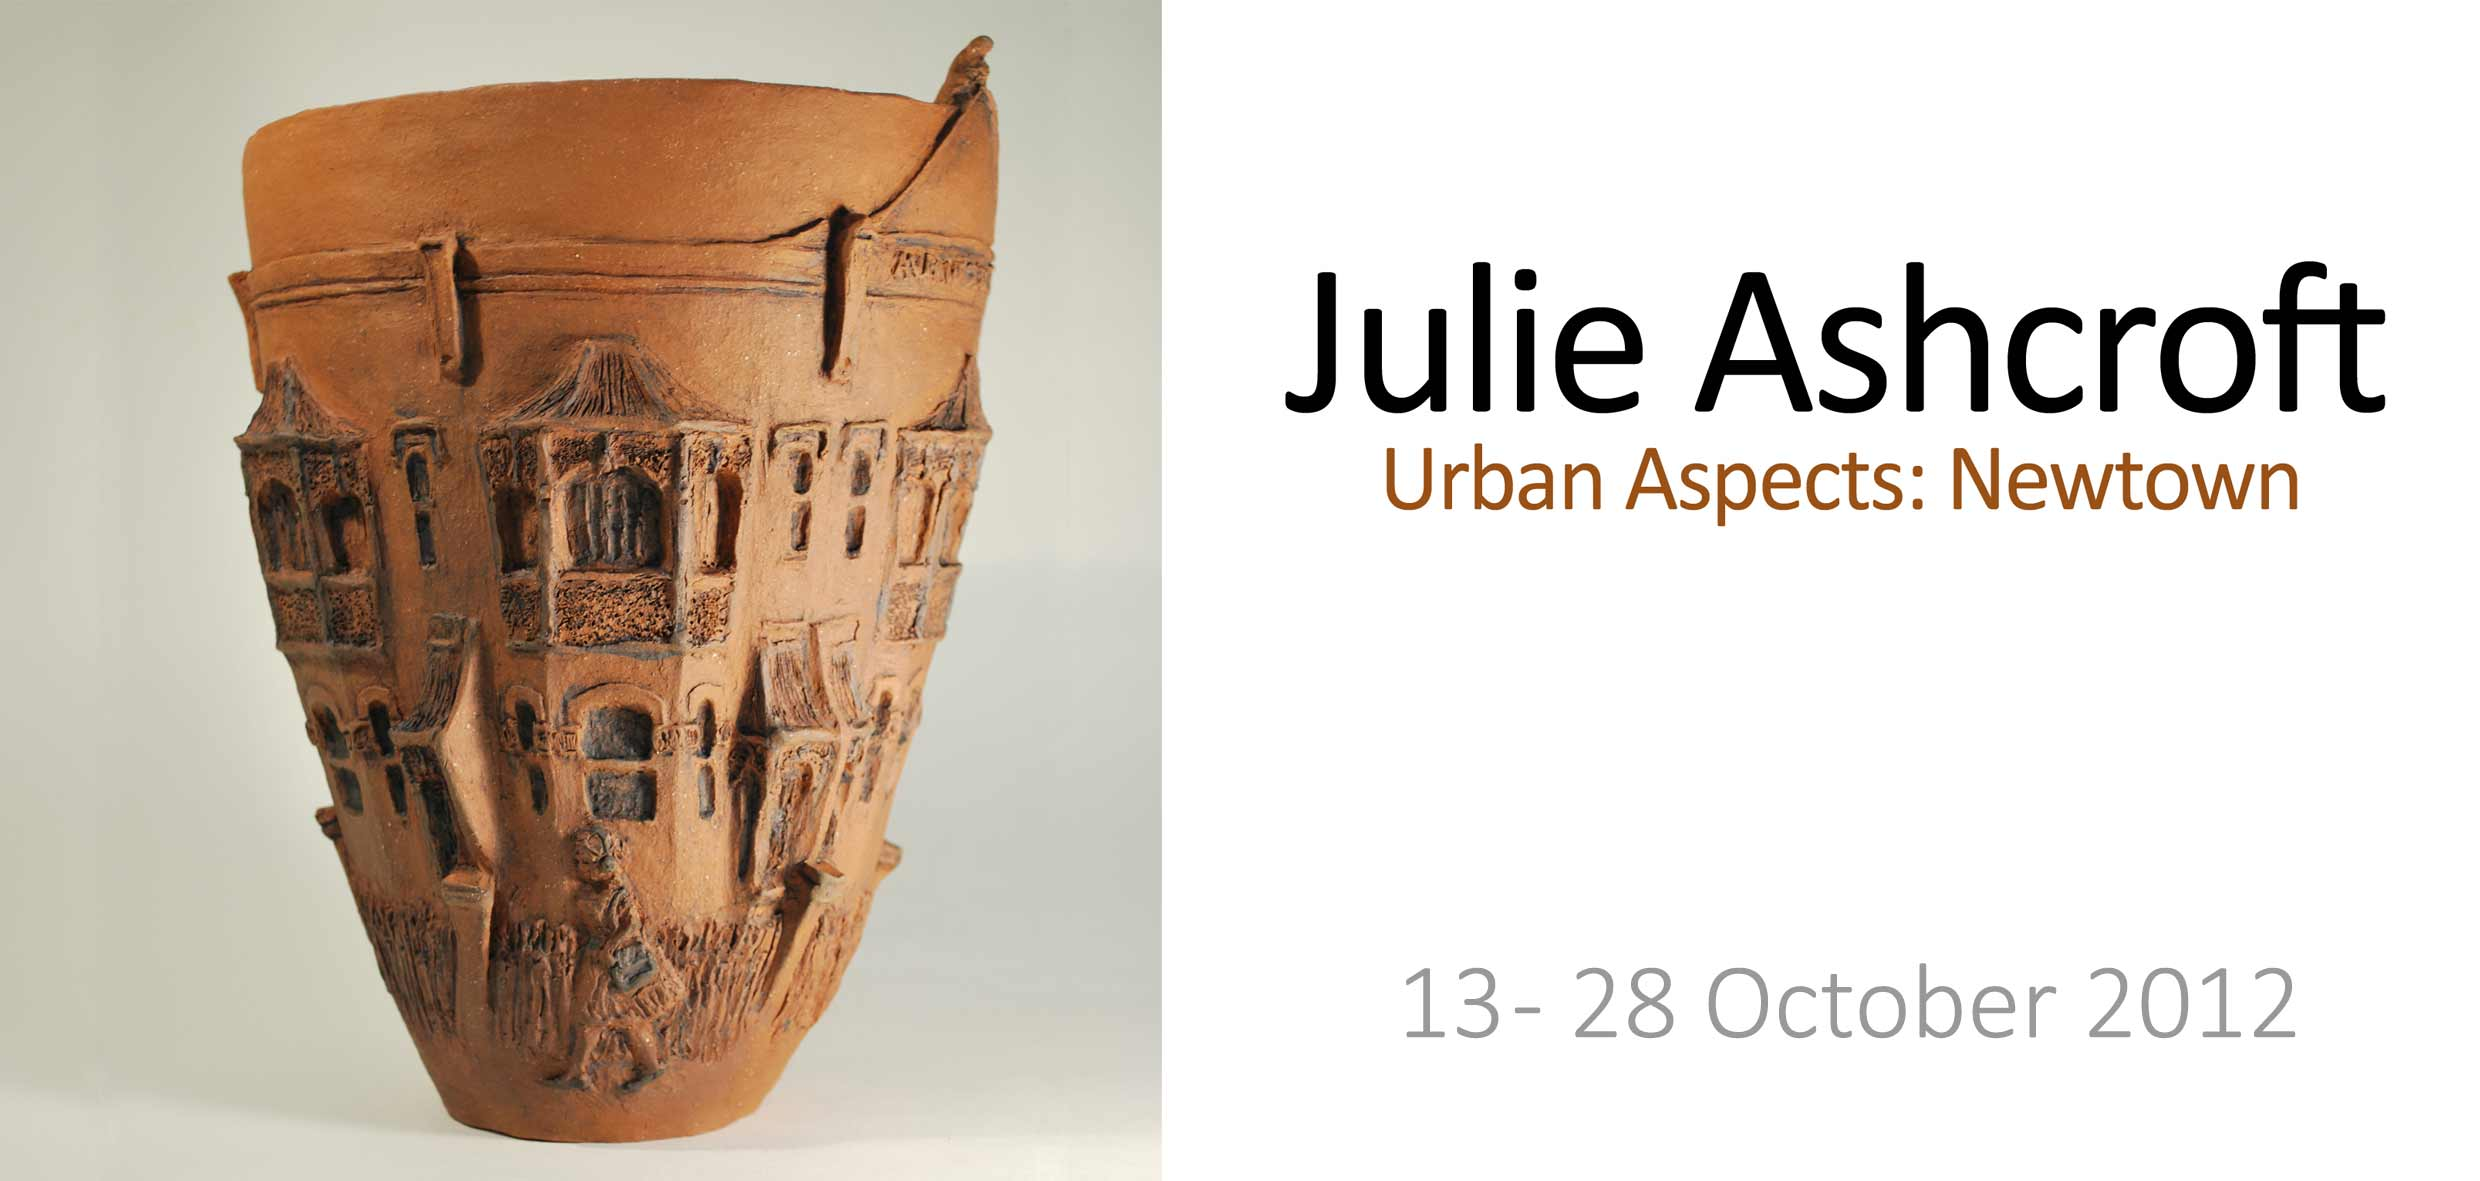 View Exhibition at Artsite Gallery, Sydney: 13 - 28 October 2012: Urban Aspects: Newtown - Julie Ashcroft